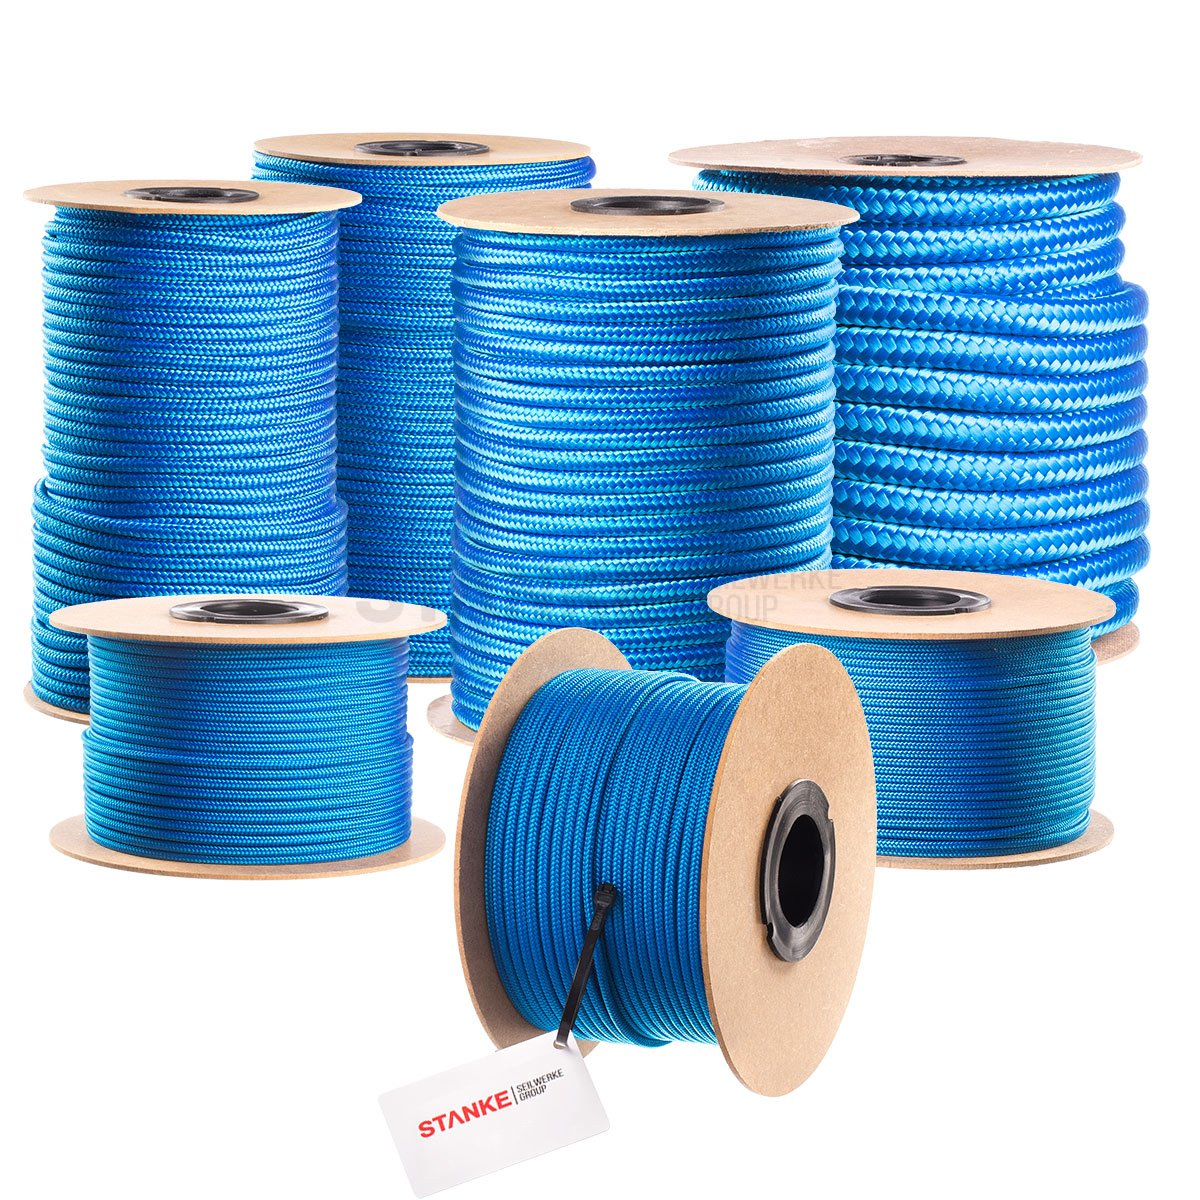 Seilwerk STANKE 100 m 2 mm Polypropylene Hollow Braided General Purpose Rope PP Line Mooring Anchor And Rigging Line Heavy Duty Twine Blue